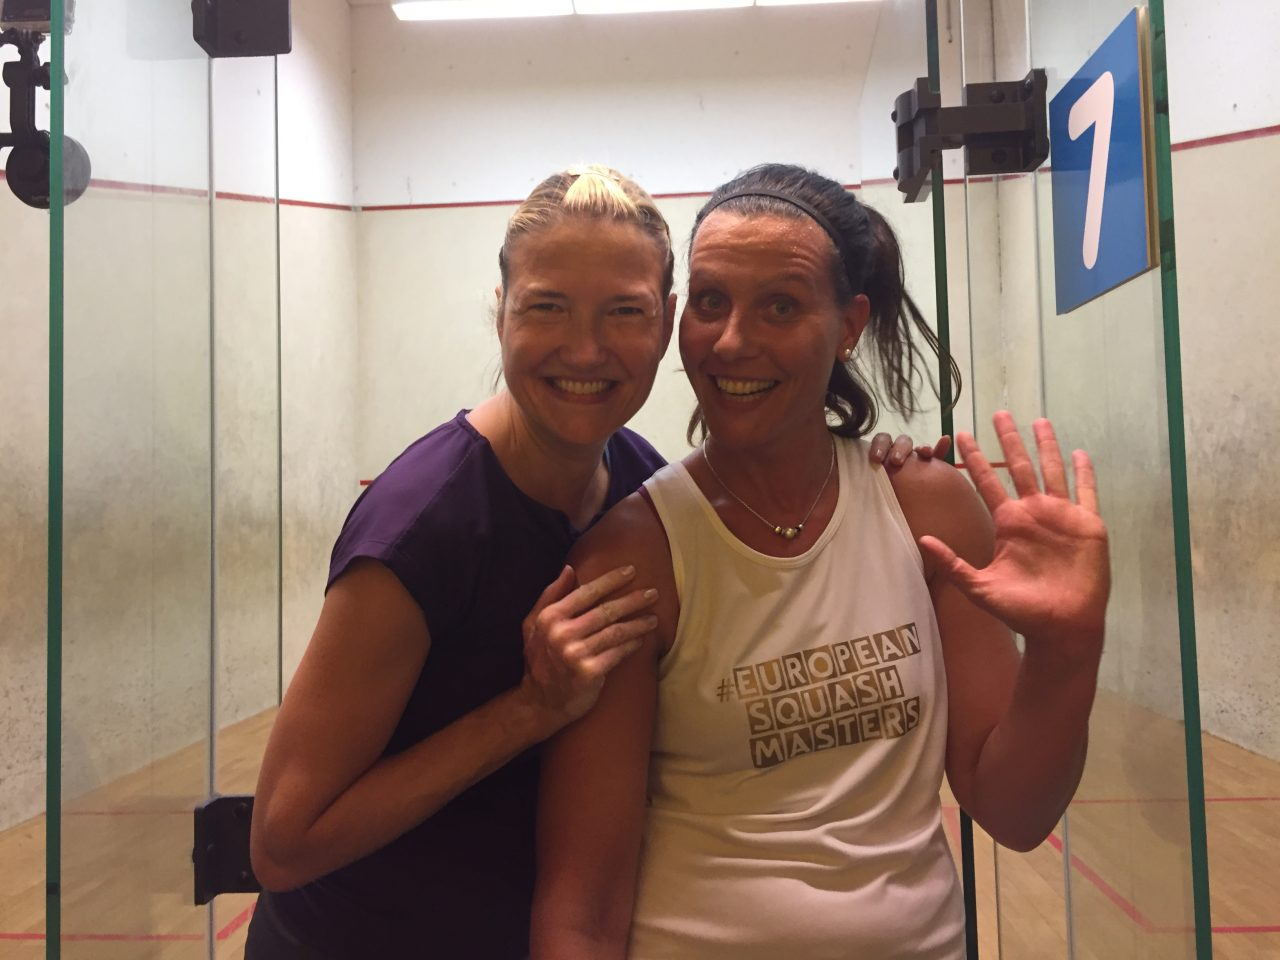 European Masters: Fitness, finesse and fiery fortitude on display from squash's senior citizens - Squash Mad